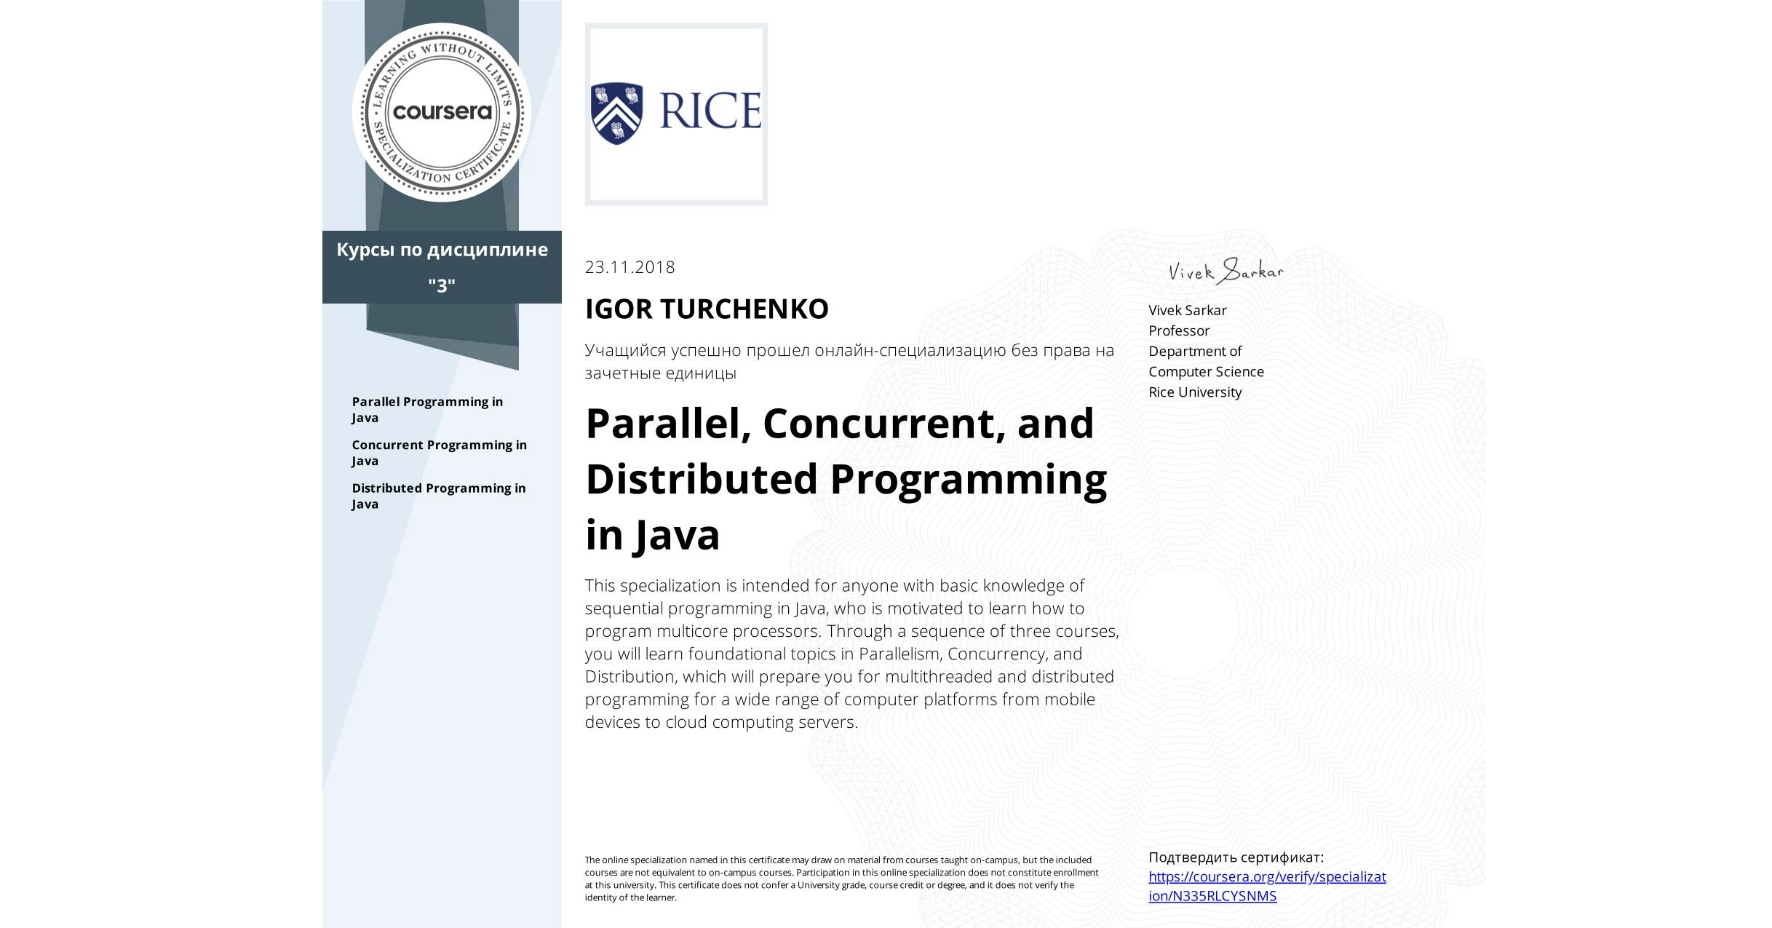 View certificate for IGOR TURCHENKO, Parallel, Concurrent, and Distributed Programming in Java, offered through Coursera. This specialization is intended for anyone with basic knowledge of sequential programming in Java, who is motivated to learn how to program multicore processors. Through a sequence of three courses, you will learn foundational topics in Parallelism, Concurrency, and Distribution, which will prepare you for multithreaded and distributed programming for a wide range of computer platforms from mobile devices to cloud computing servers.